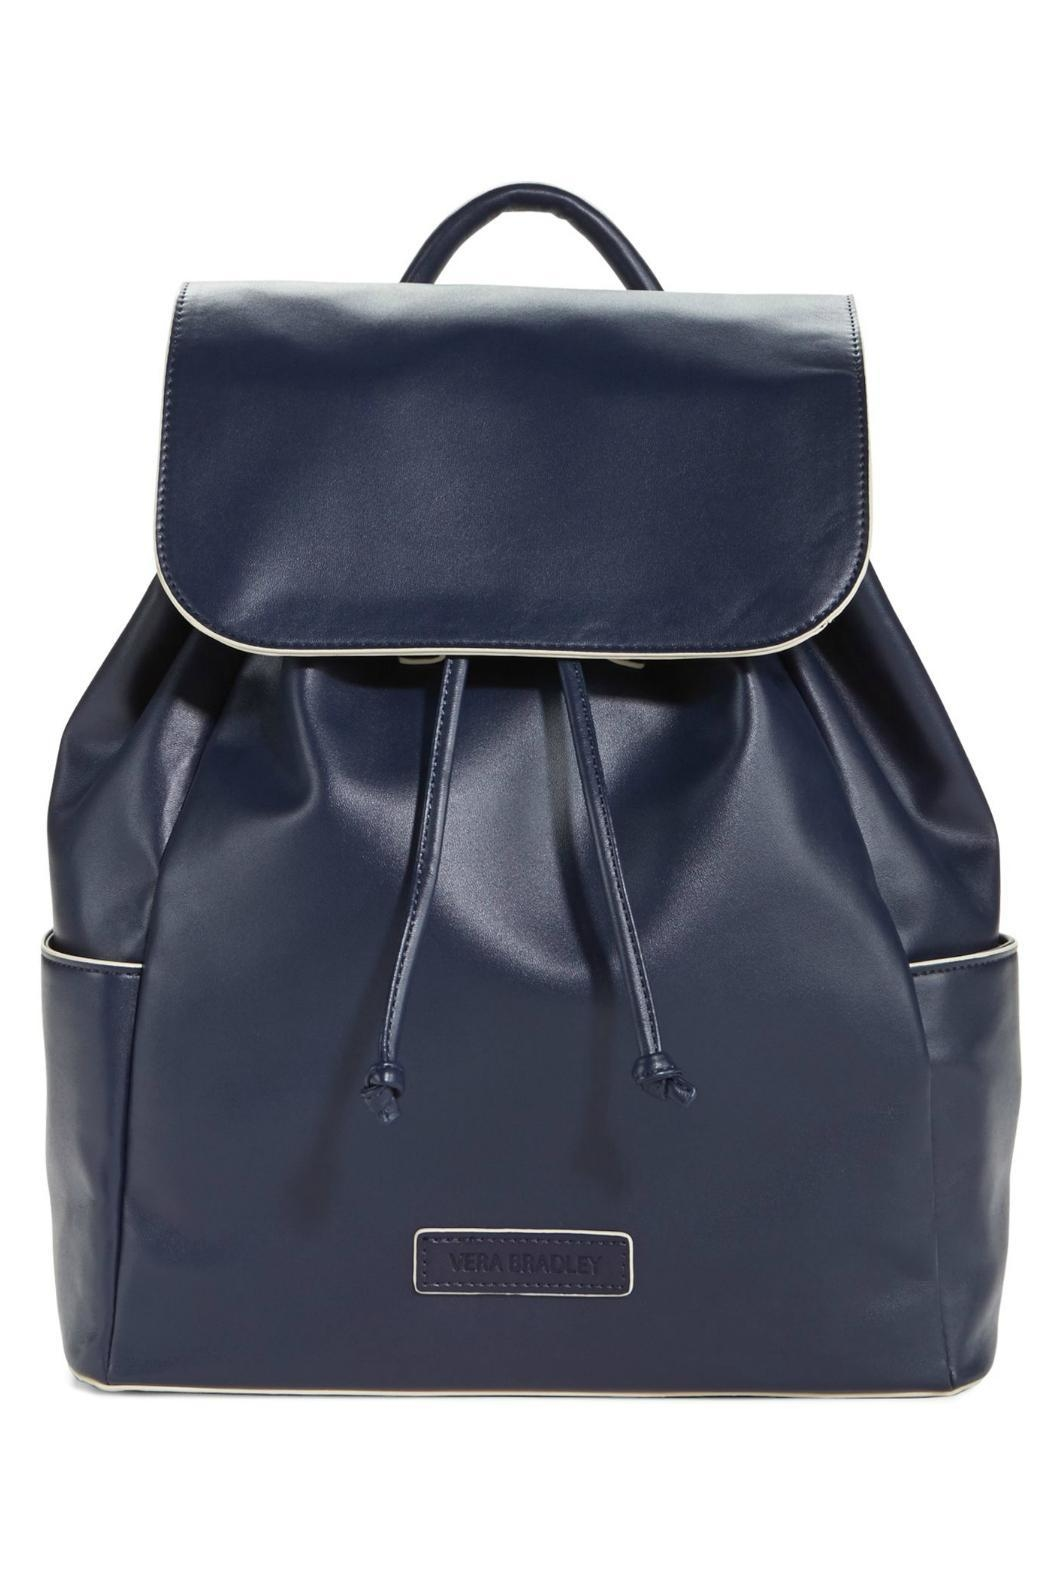 Vera Bradley Navy Drawstring Backpack - Main Image